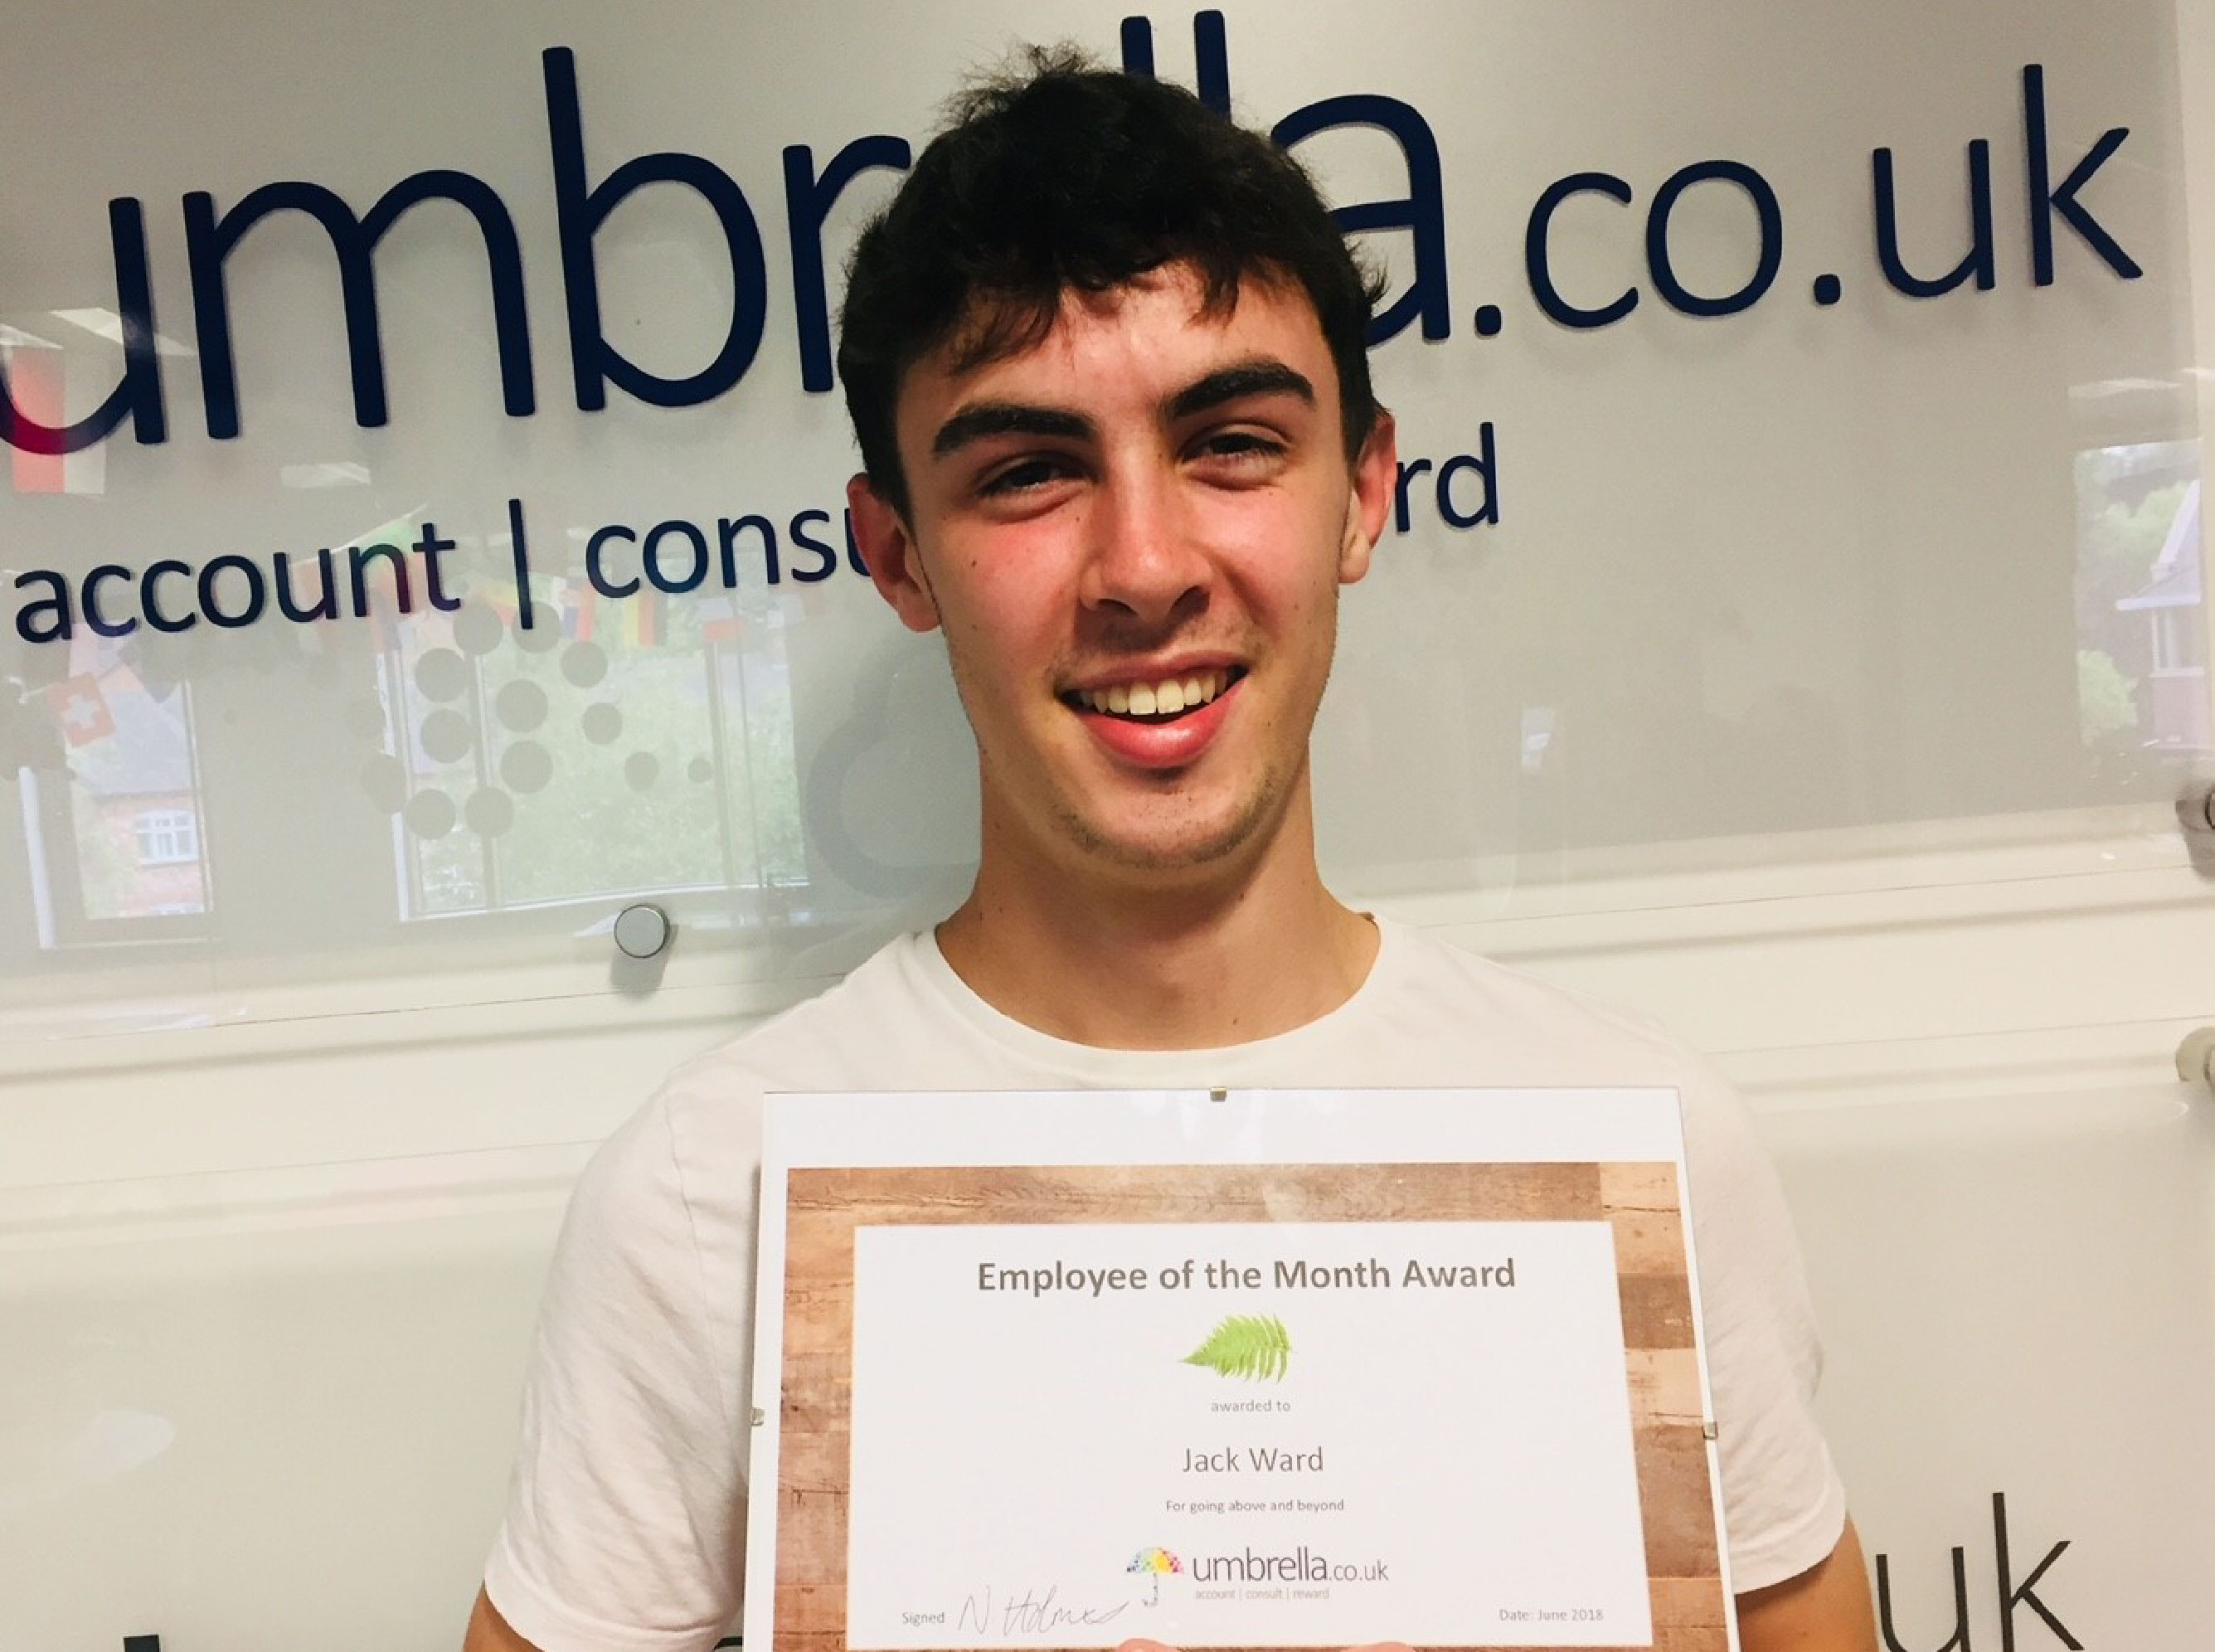 Jack Ward - Employee of the Month June 2018 - Umbrella Accountants